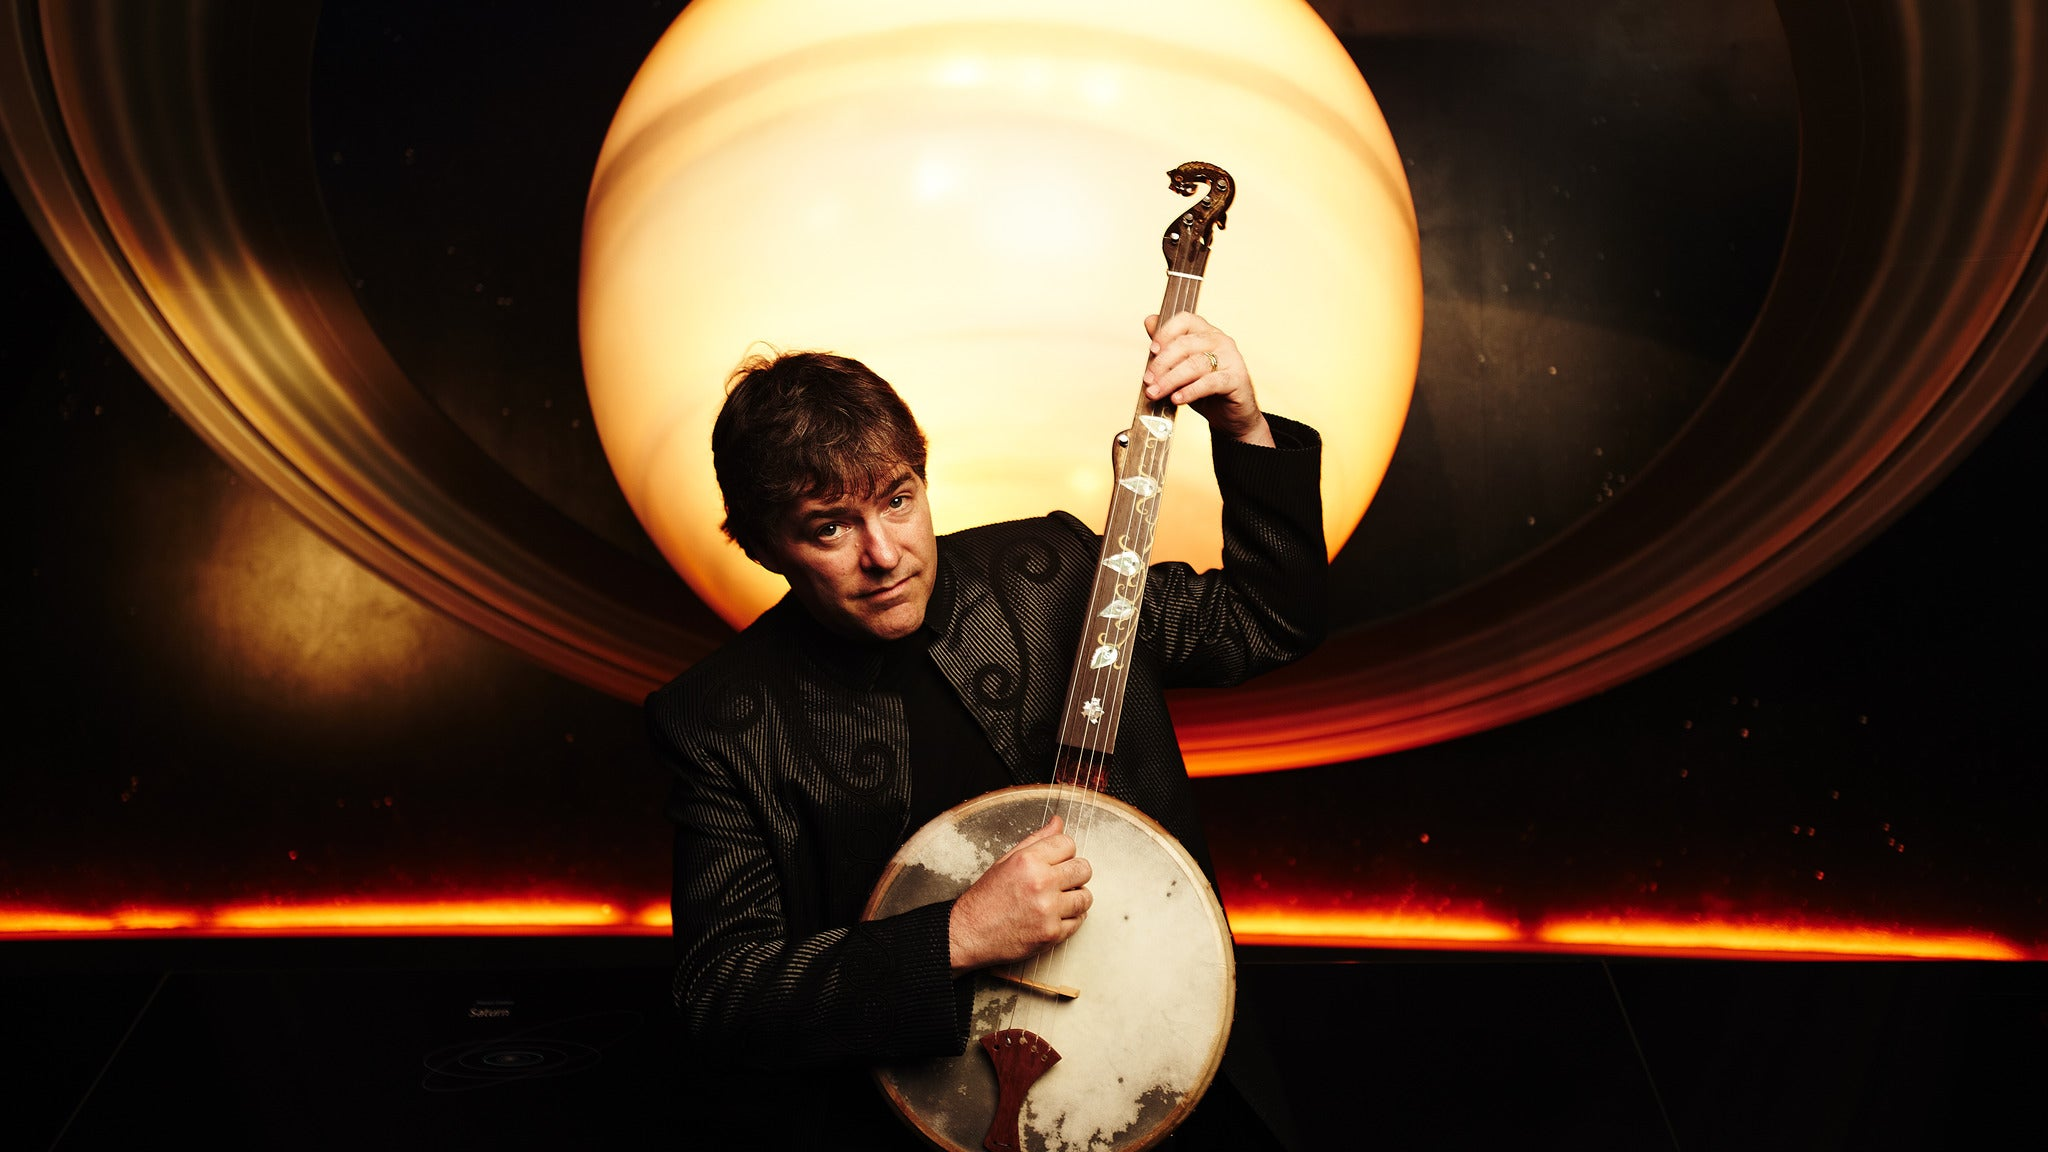 Béla Fleck & Abigail Washburn at The Lyric Theatre